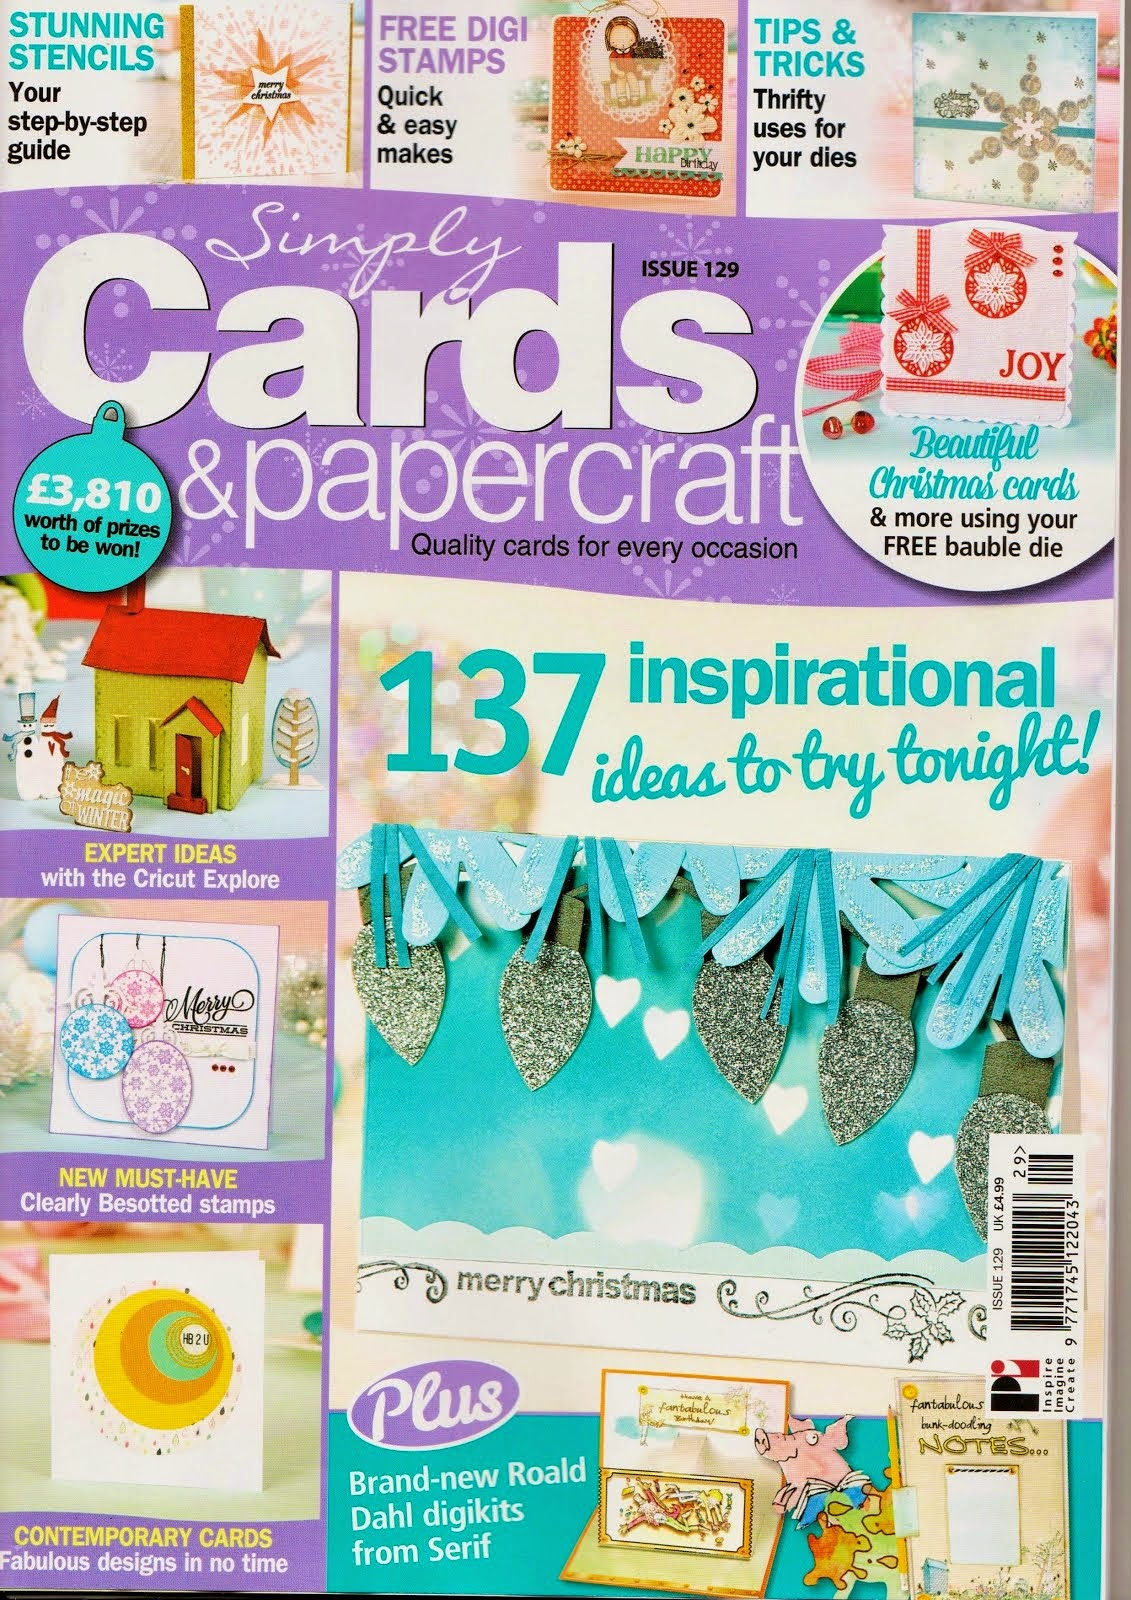 Published in Issue #129 Simply Cards and Papercraft